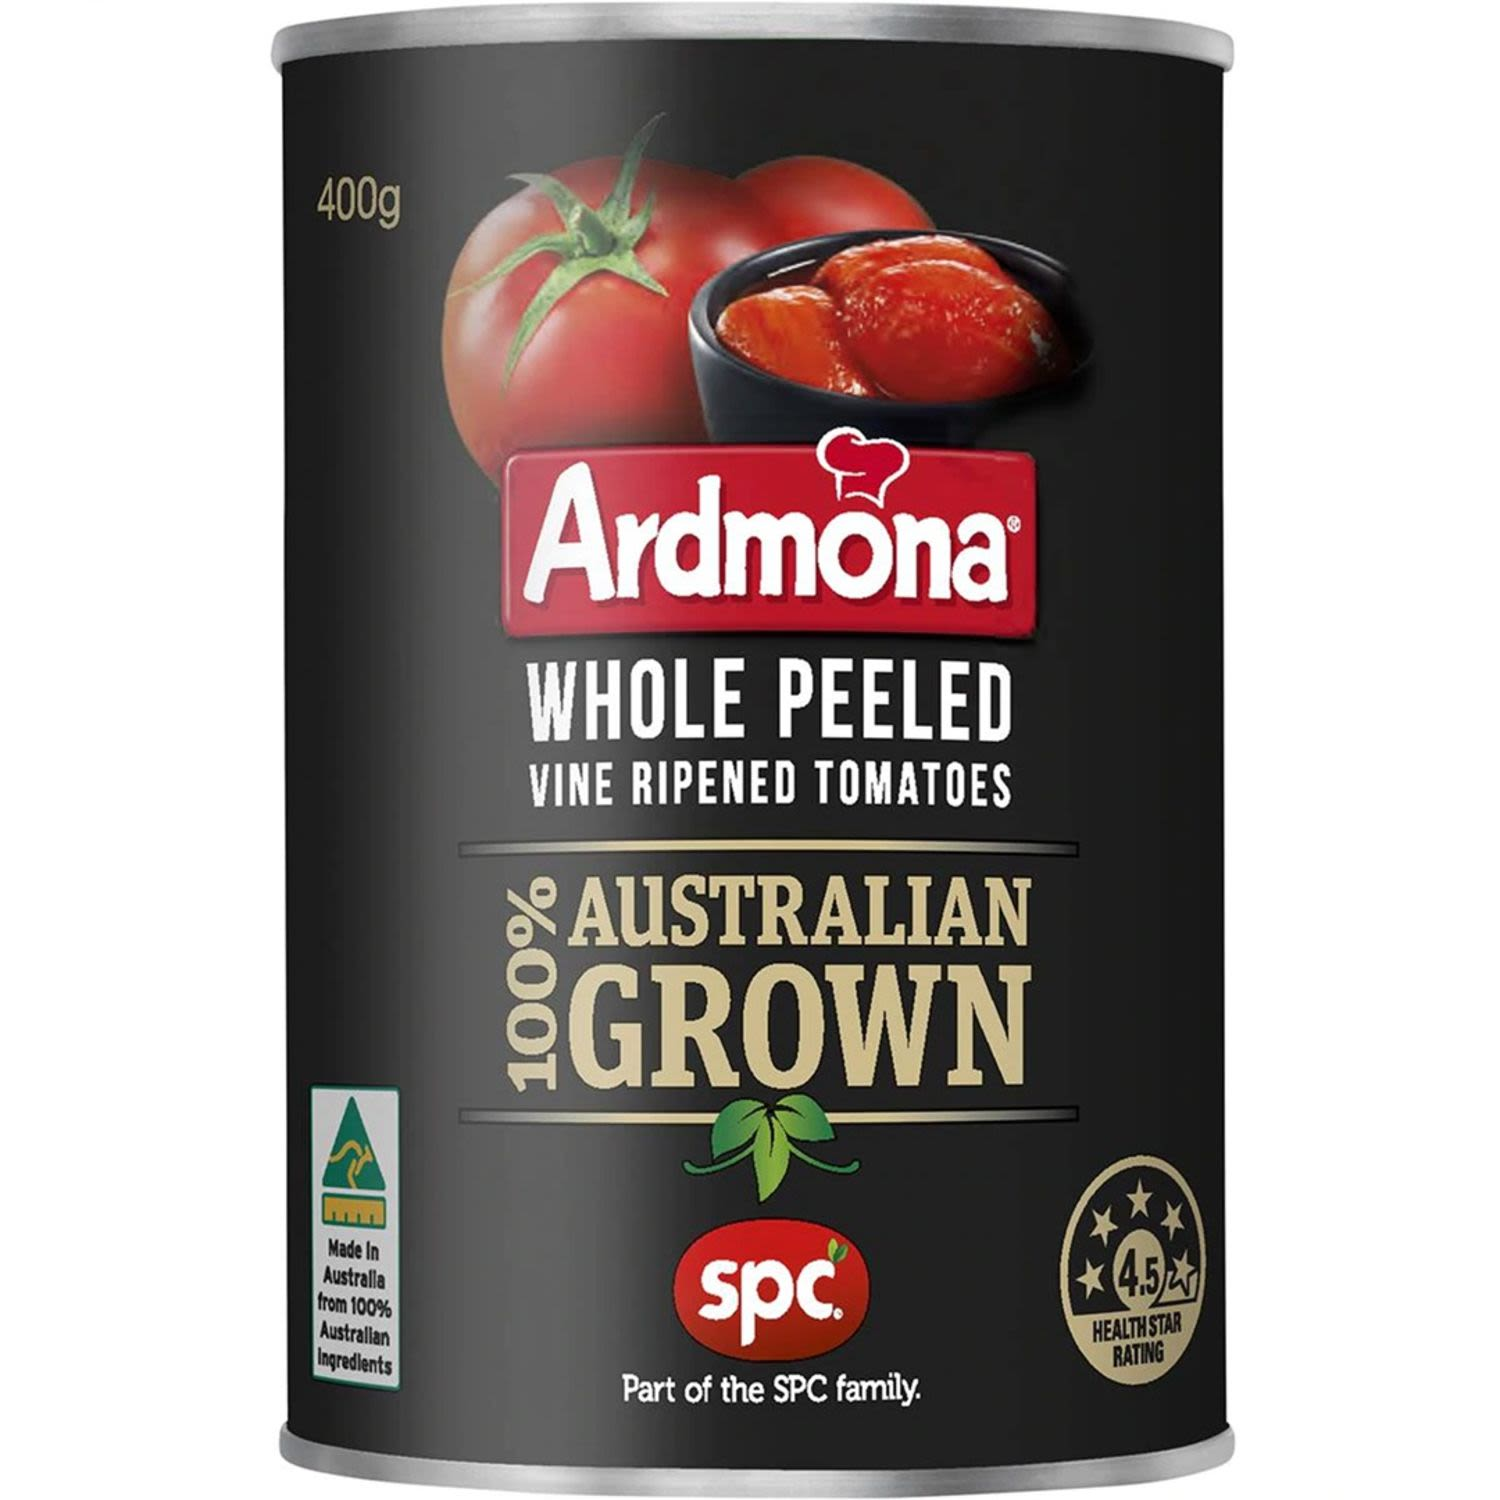 Ardmona Whole Peeled Vine Ripened Tomatoes.  100% Australian grown.  Jim and Neil, Echuca, Victoria.  Jim and Neil Geltch are tomato growers near Echuca, Northern Victoria. They are part of a select group of Australian tomato growers, who provide quality tomatoes for Ardmona products.  - No artificial colours, flavours or preservatives.  - Tomatoes are a source of the antioxidant lycopene.  - No added salt or sugar.